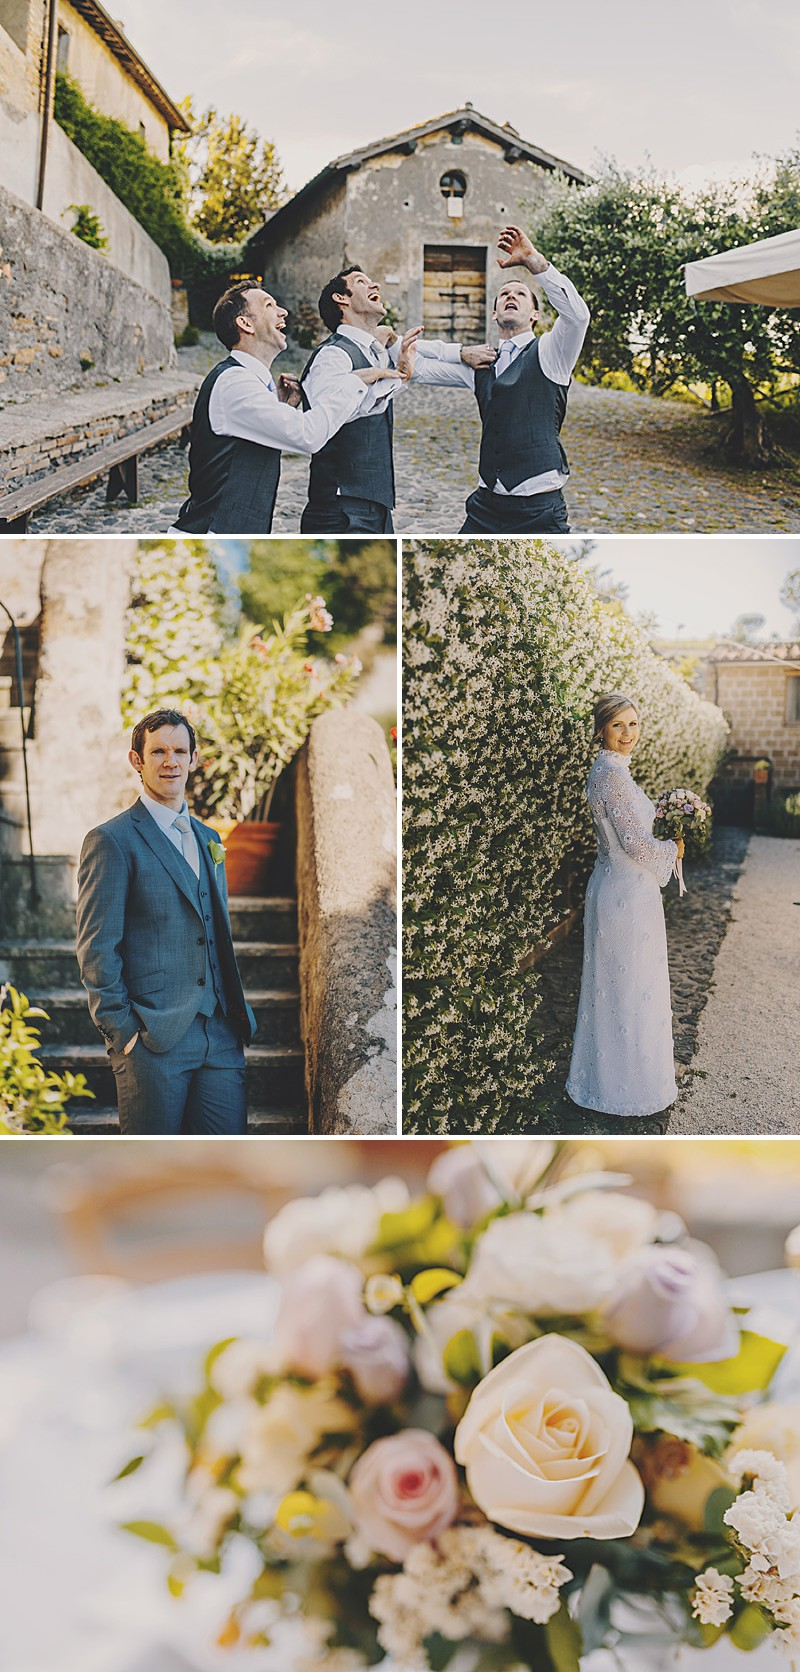 An Italian Destination Wedding At Borgo di Tragliata Near Rome With A Vintage Crotchet Wedding Dress and Sorbet Rose Bouquet Photographed By Mark Pacura._0005